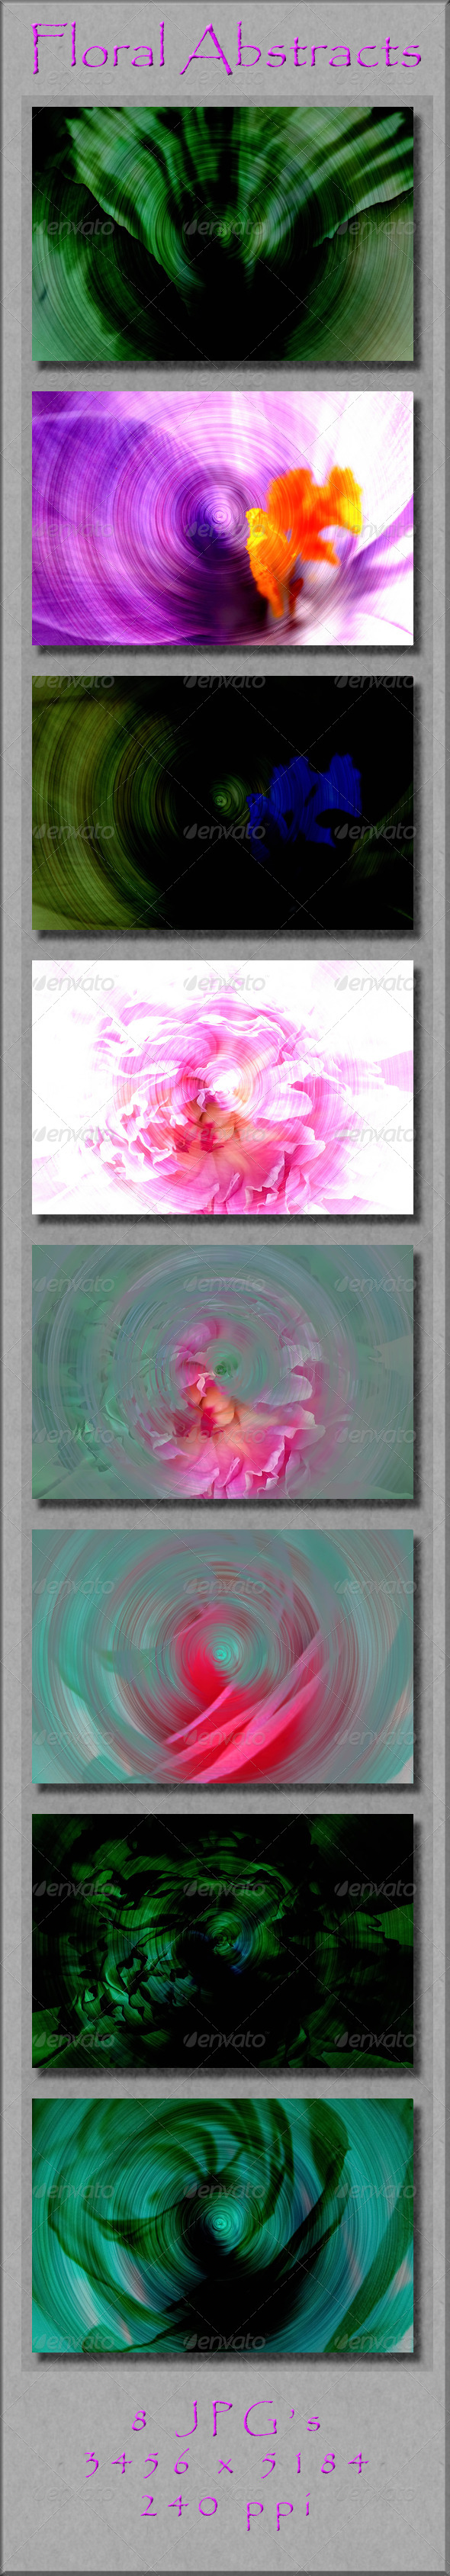 GraphicRiver Floral Abstracts 4176875